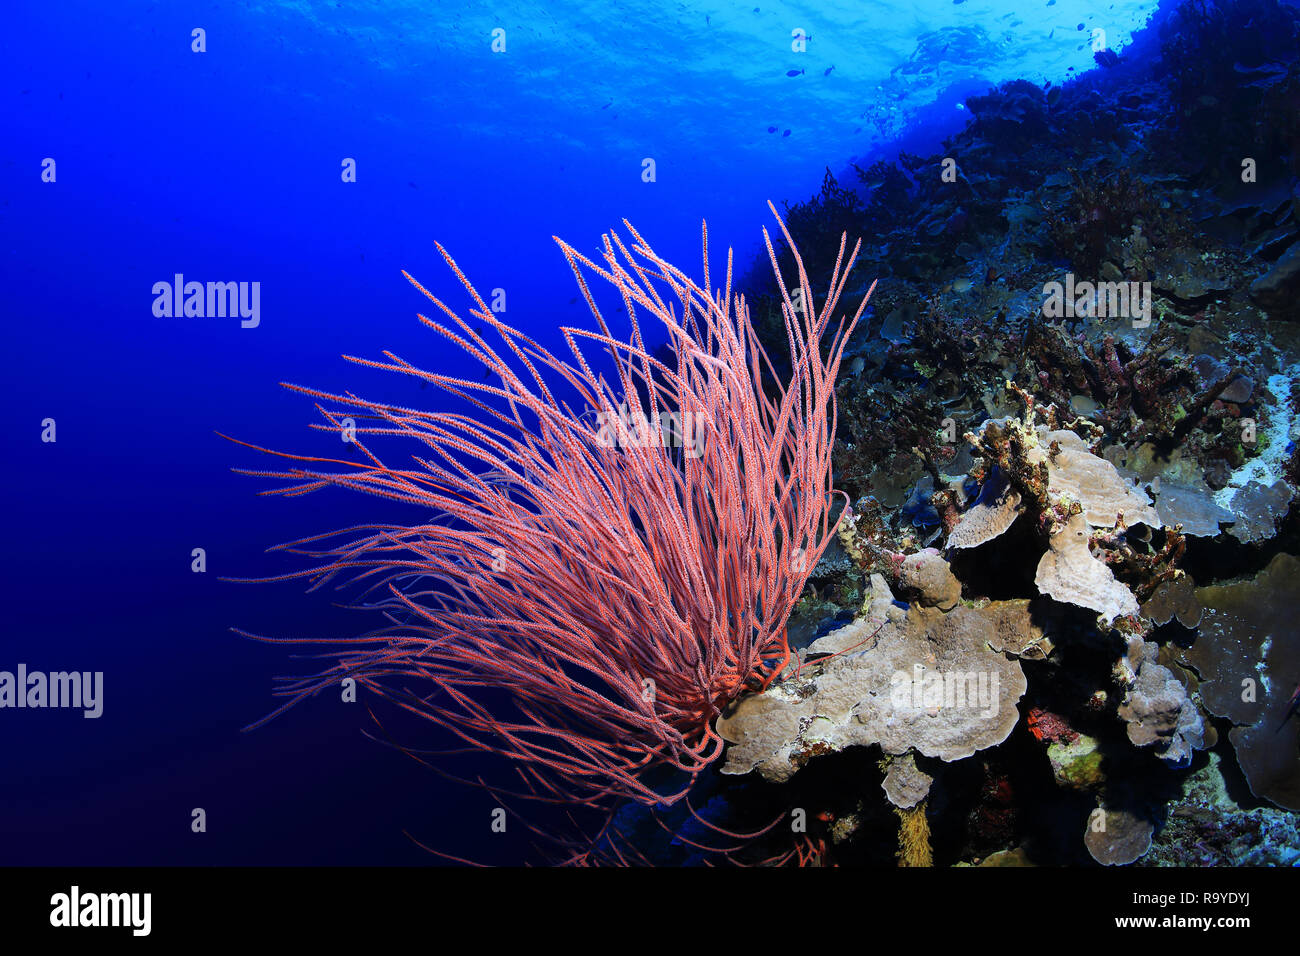 Beautiful Corals underwater in the Great Barrier Reef of Australia - Stock Image